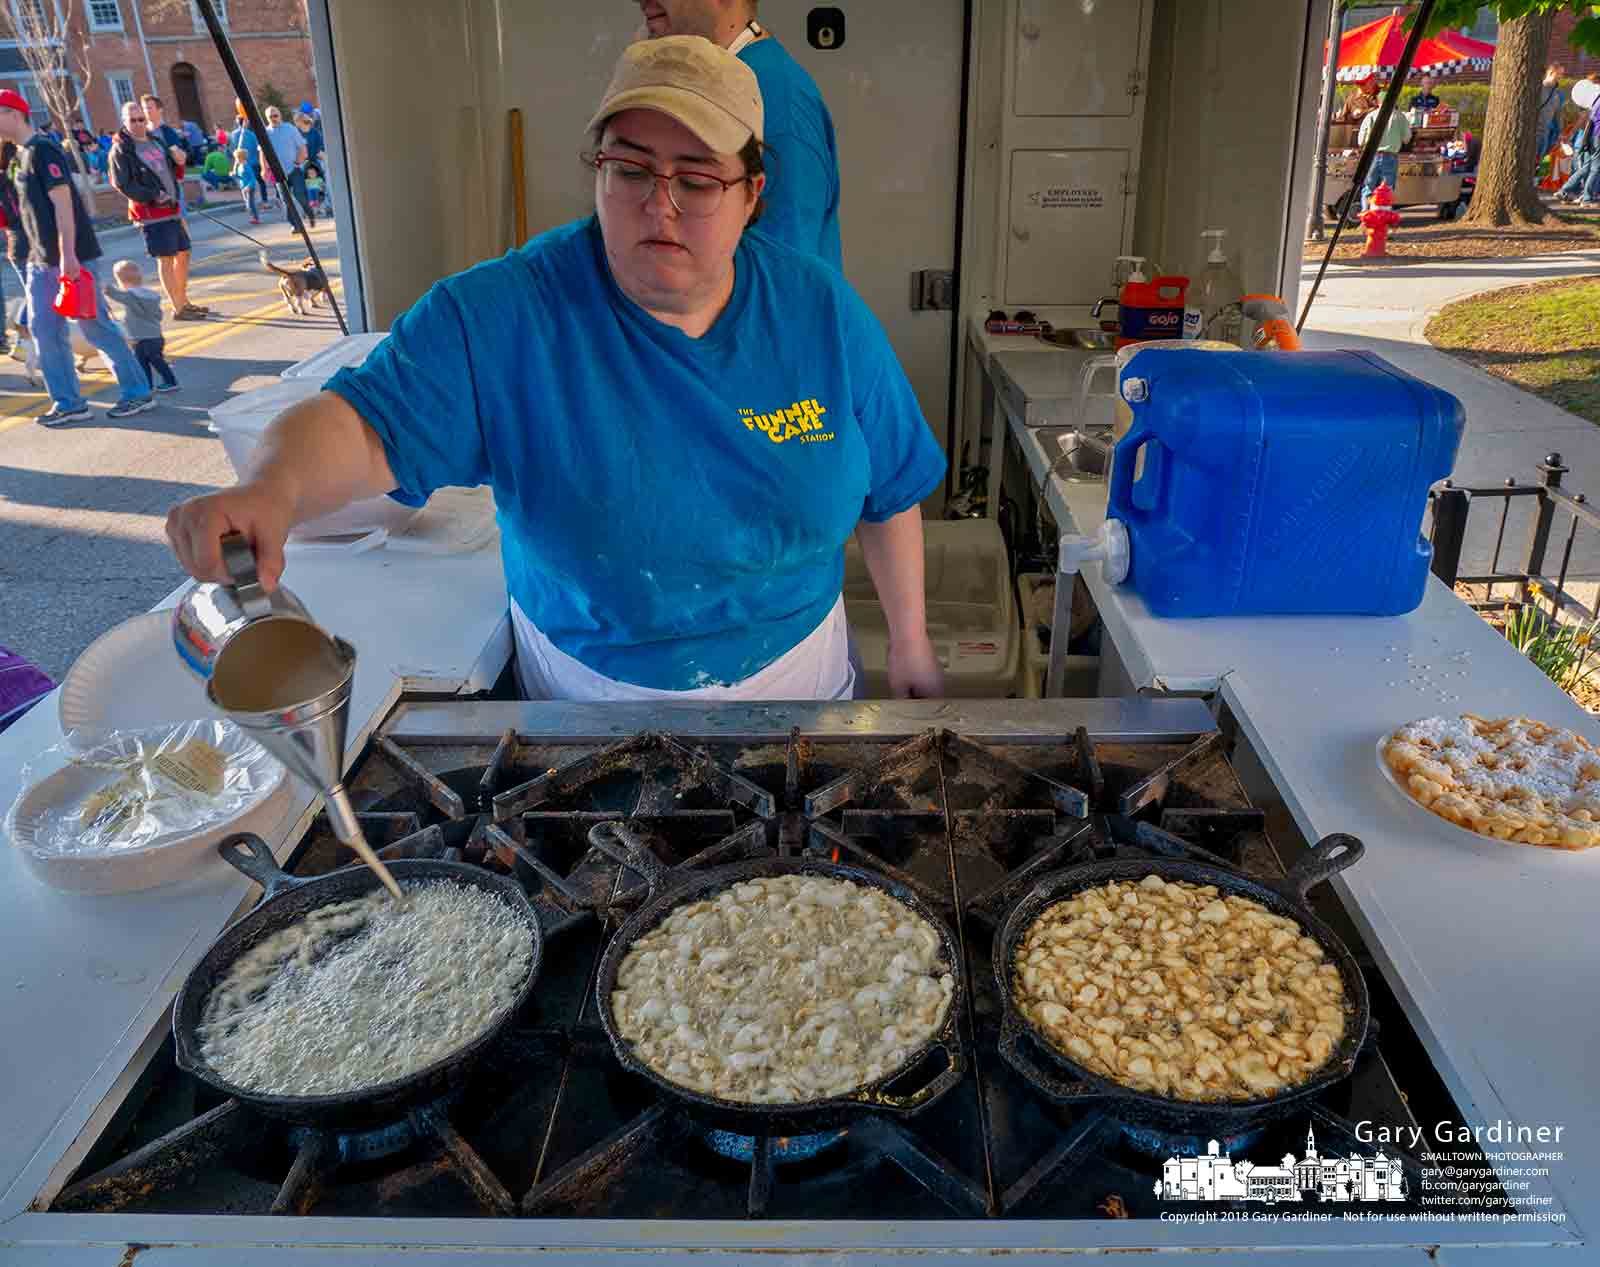 A trio of fried funnel cakes fills the cast irons skillets of a food vendor at the first Fourth Friday of the summer in Westerville. My Final Photo for April 27, 2018.